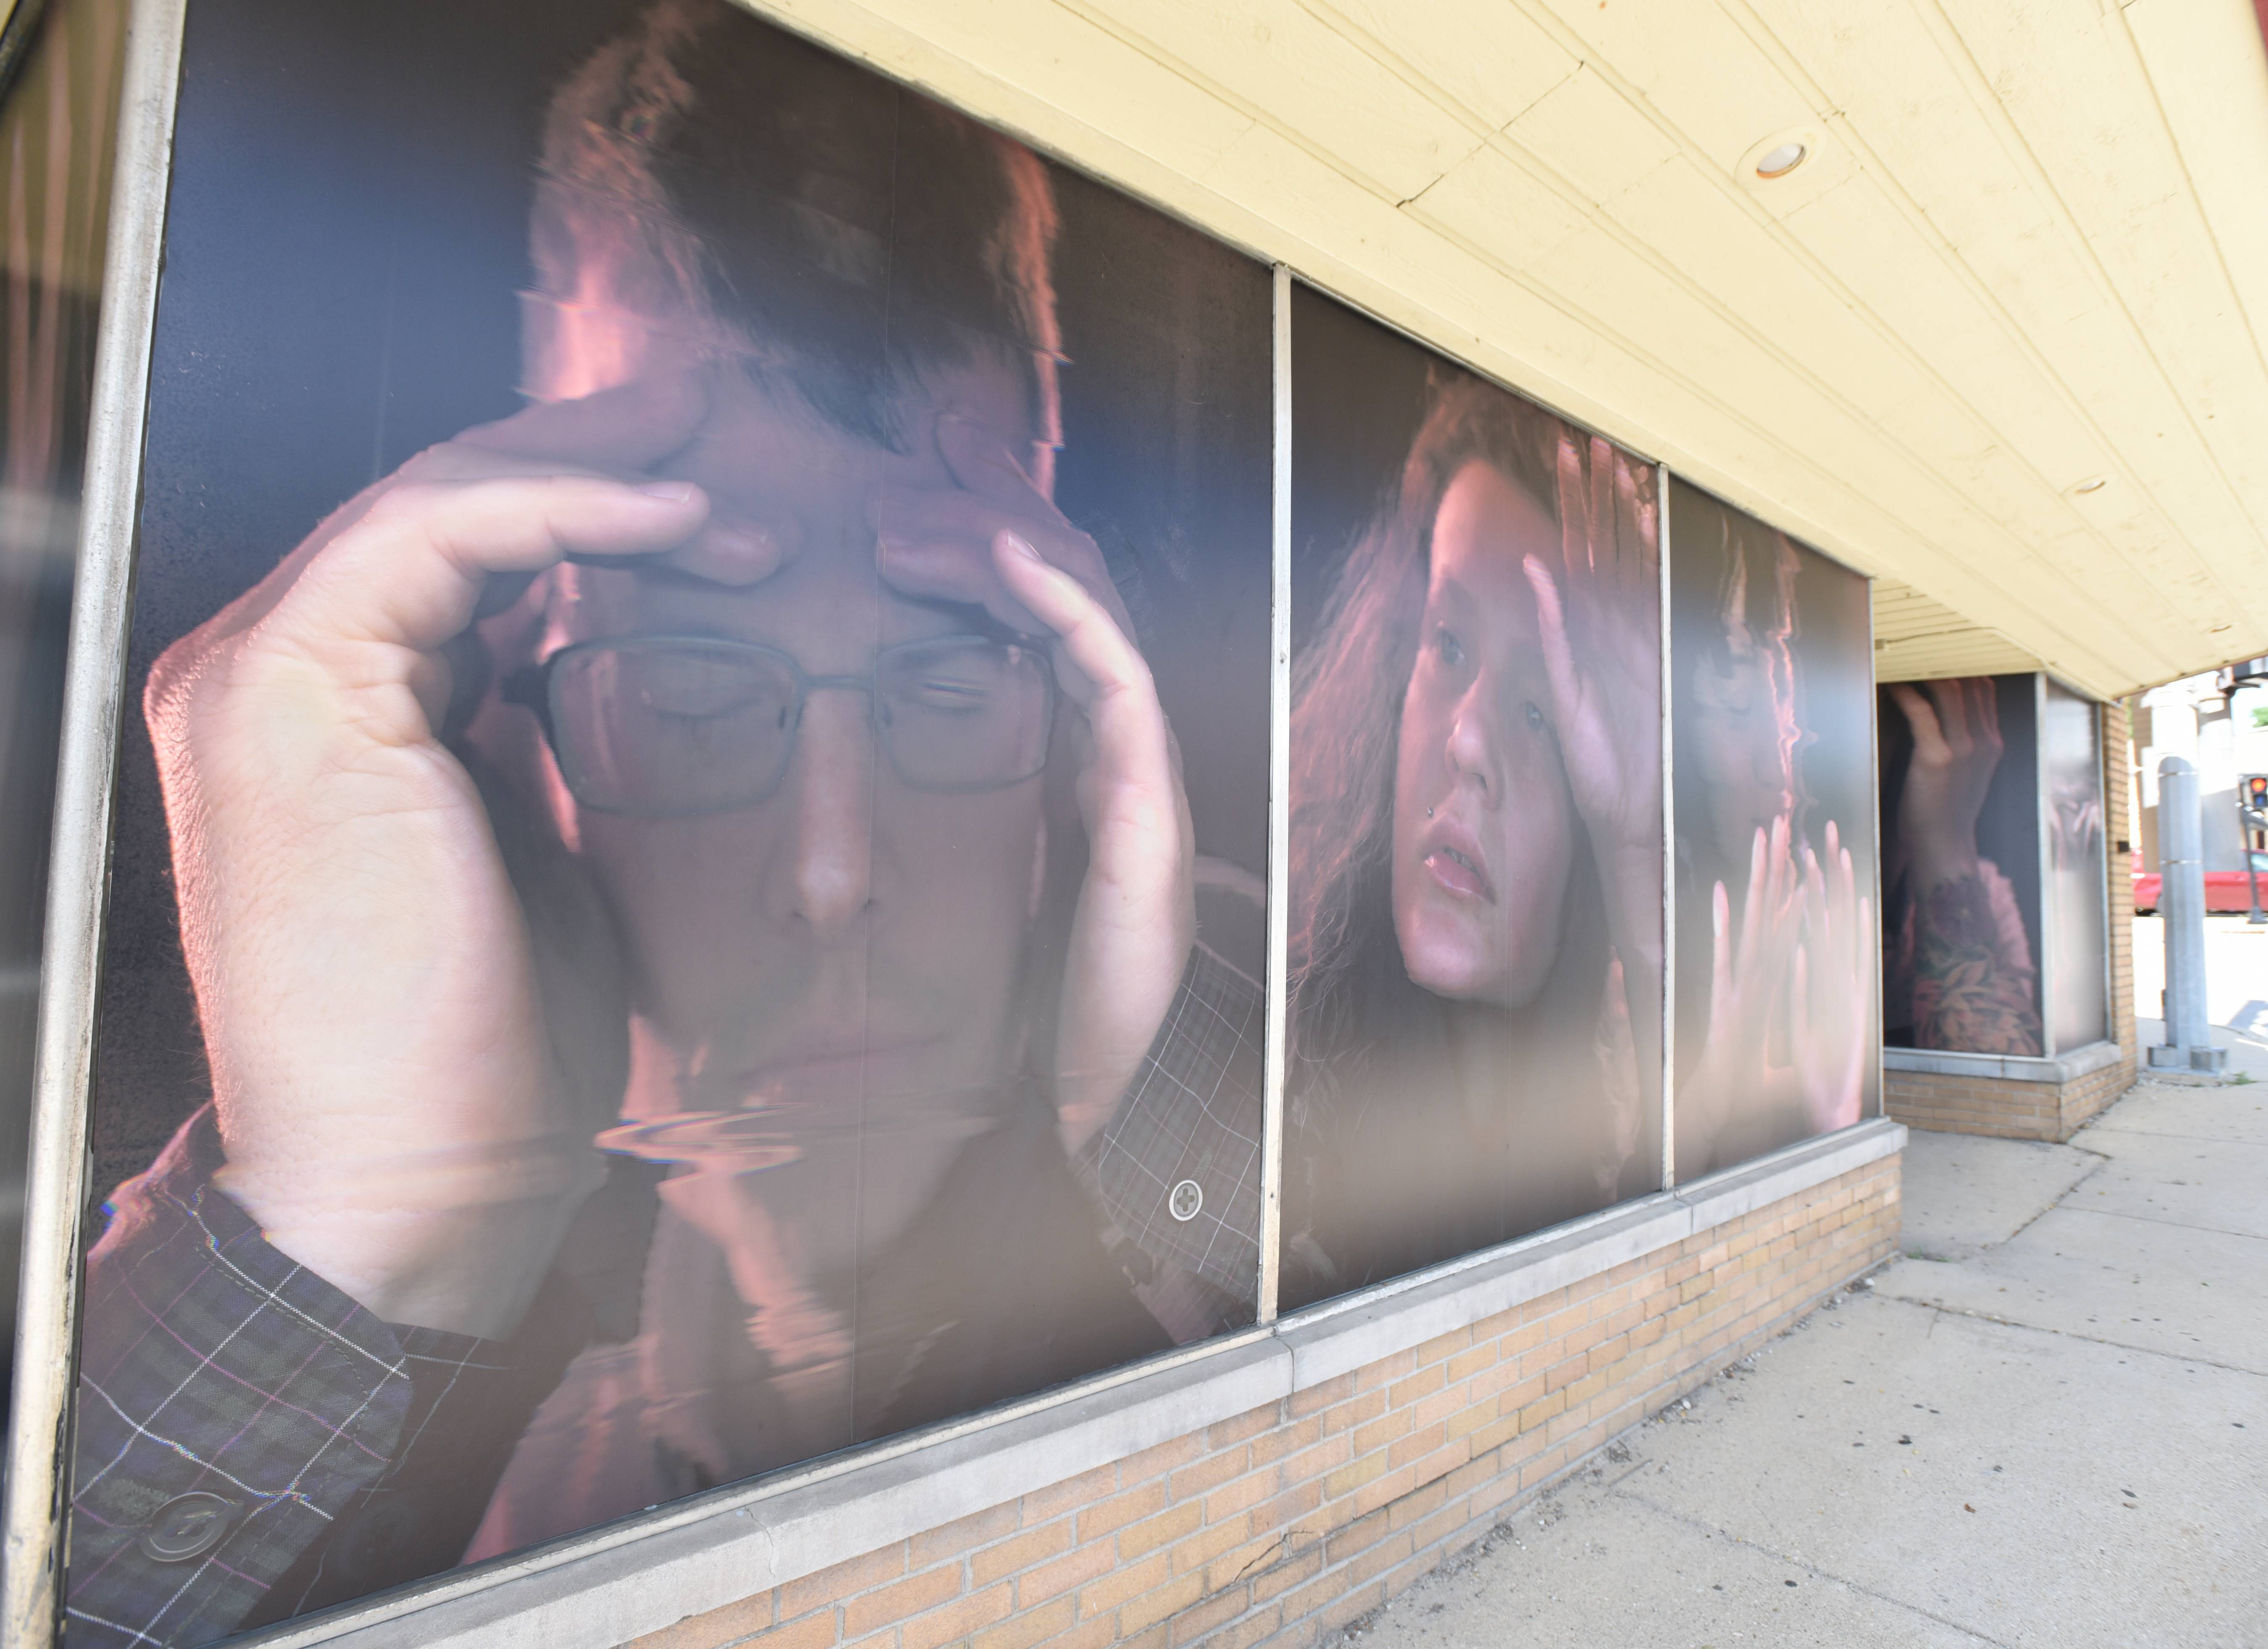 A temporary art installation can be found on the windows of the building at 103 W. Washington St. in downtown West Chicago. The city's cultural arts commission is asking for residents' help in creating an inventory of public art.